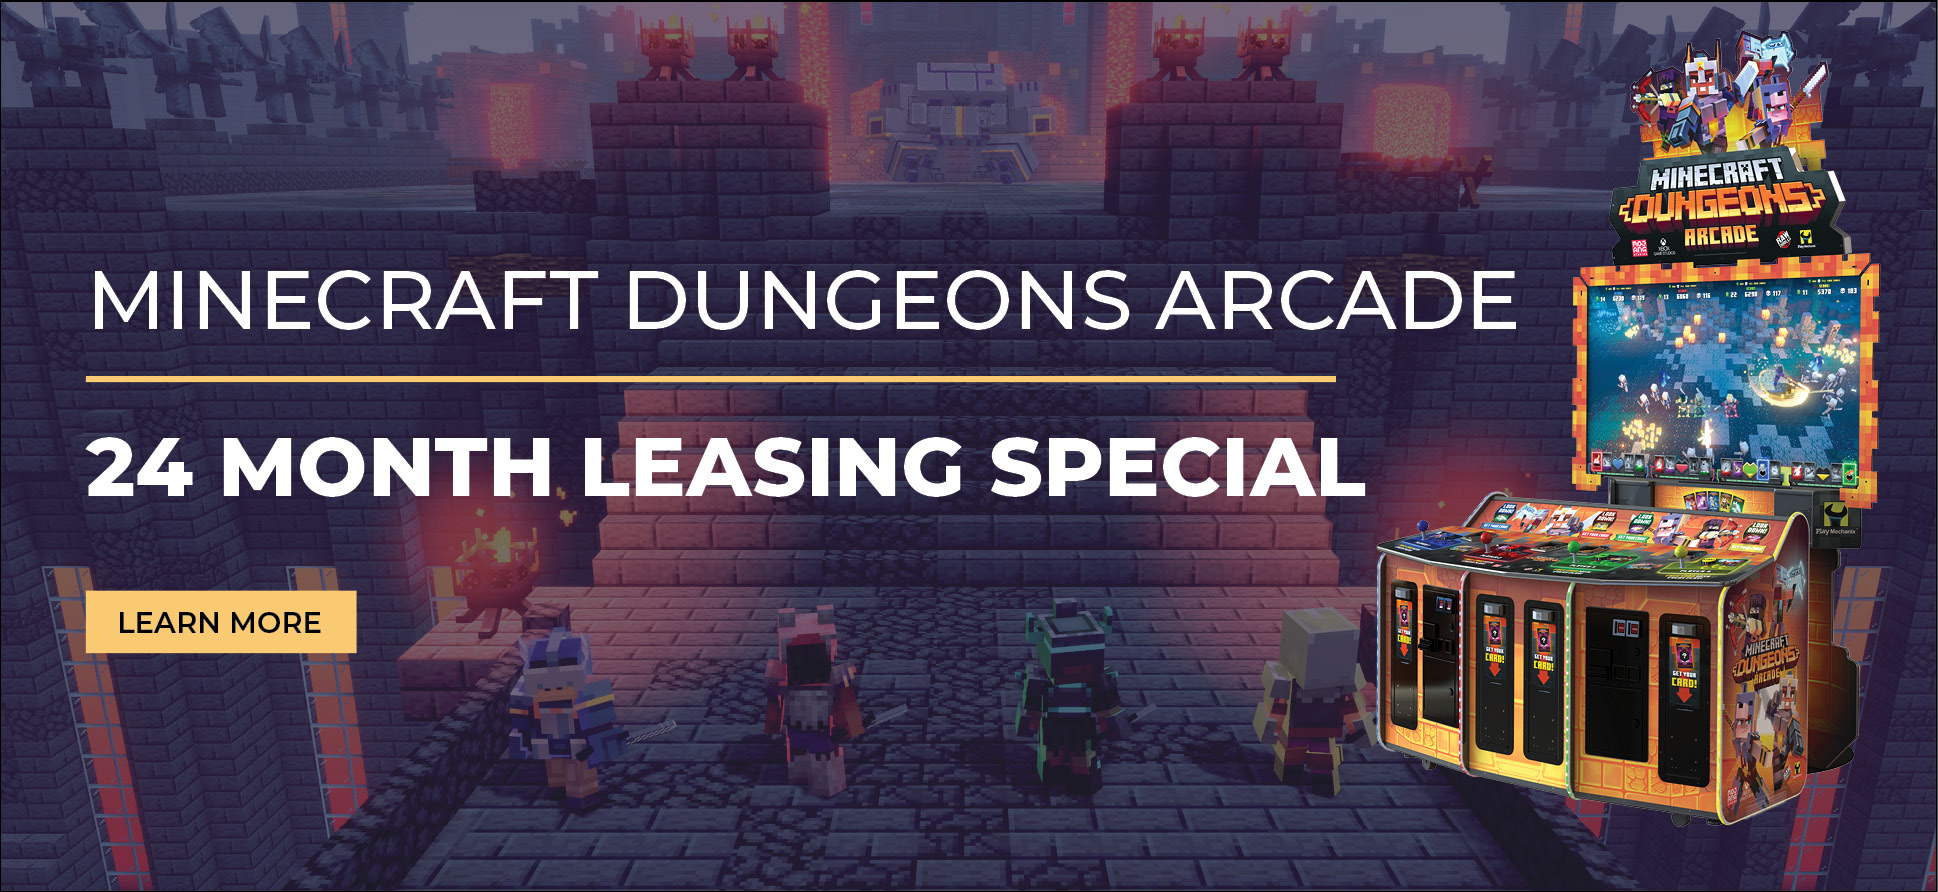 Minecraft Dungeons Arcade Leasing Special